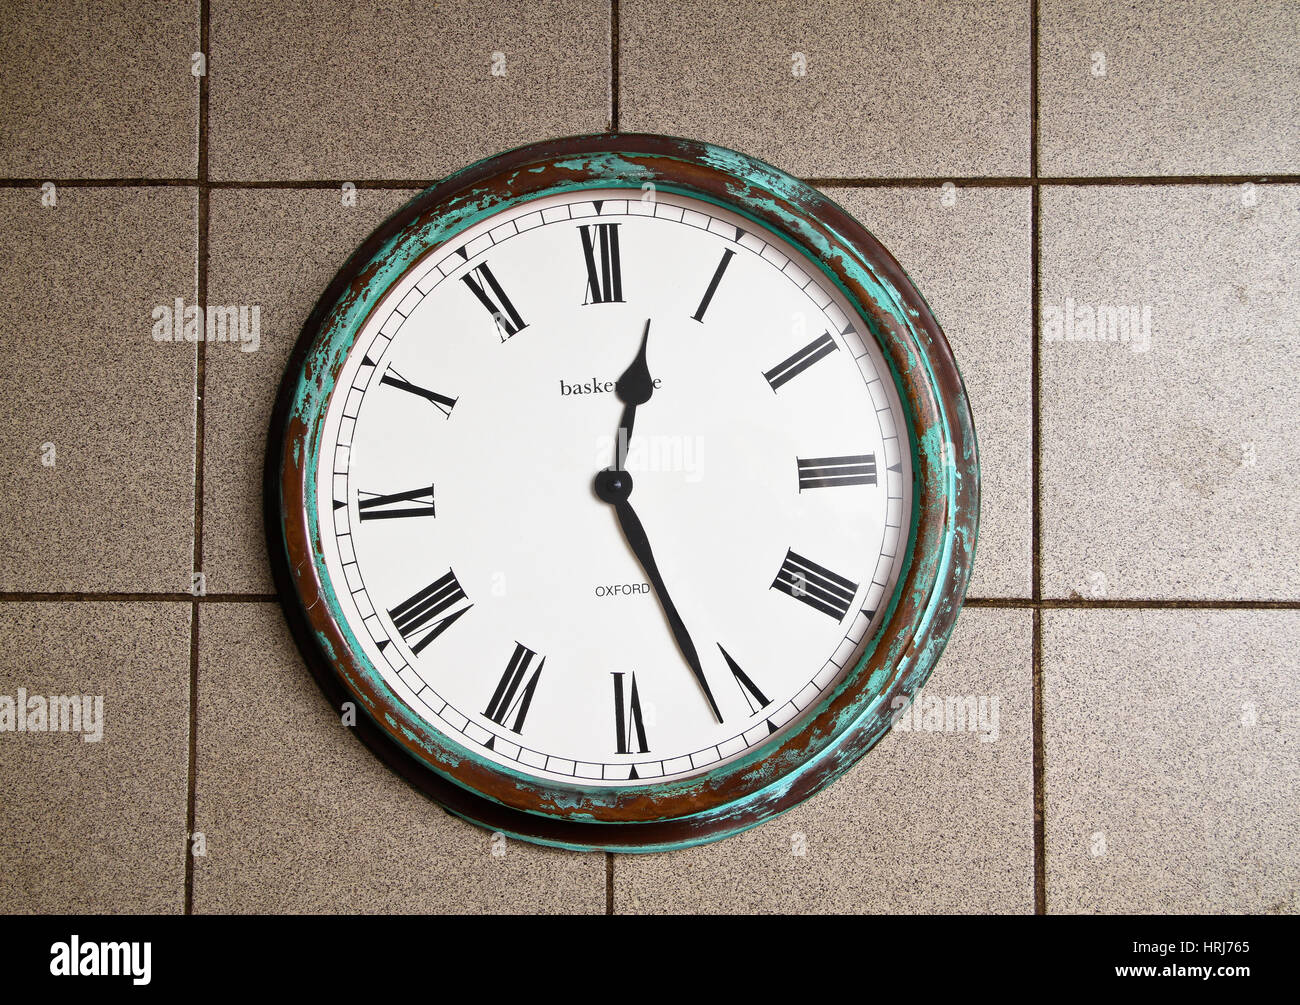 Clock with Roman Numerals - Stock Image